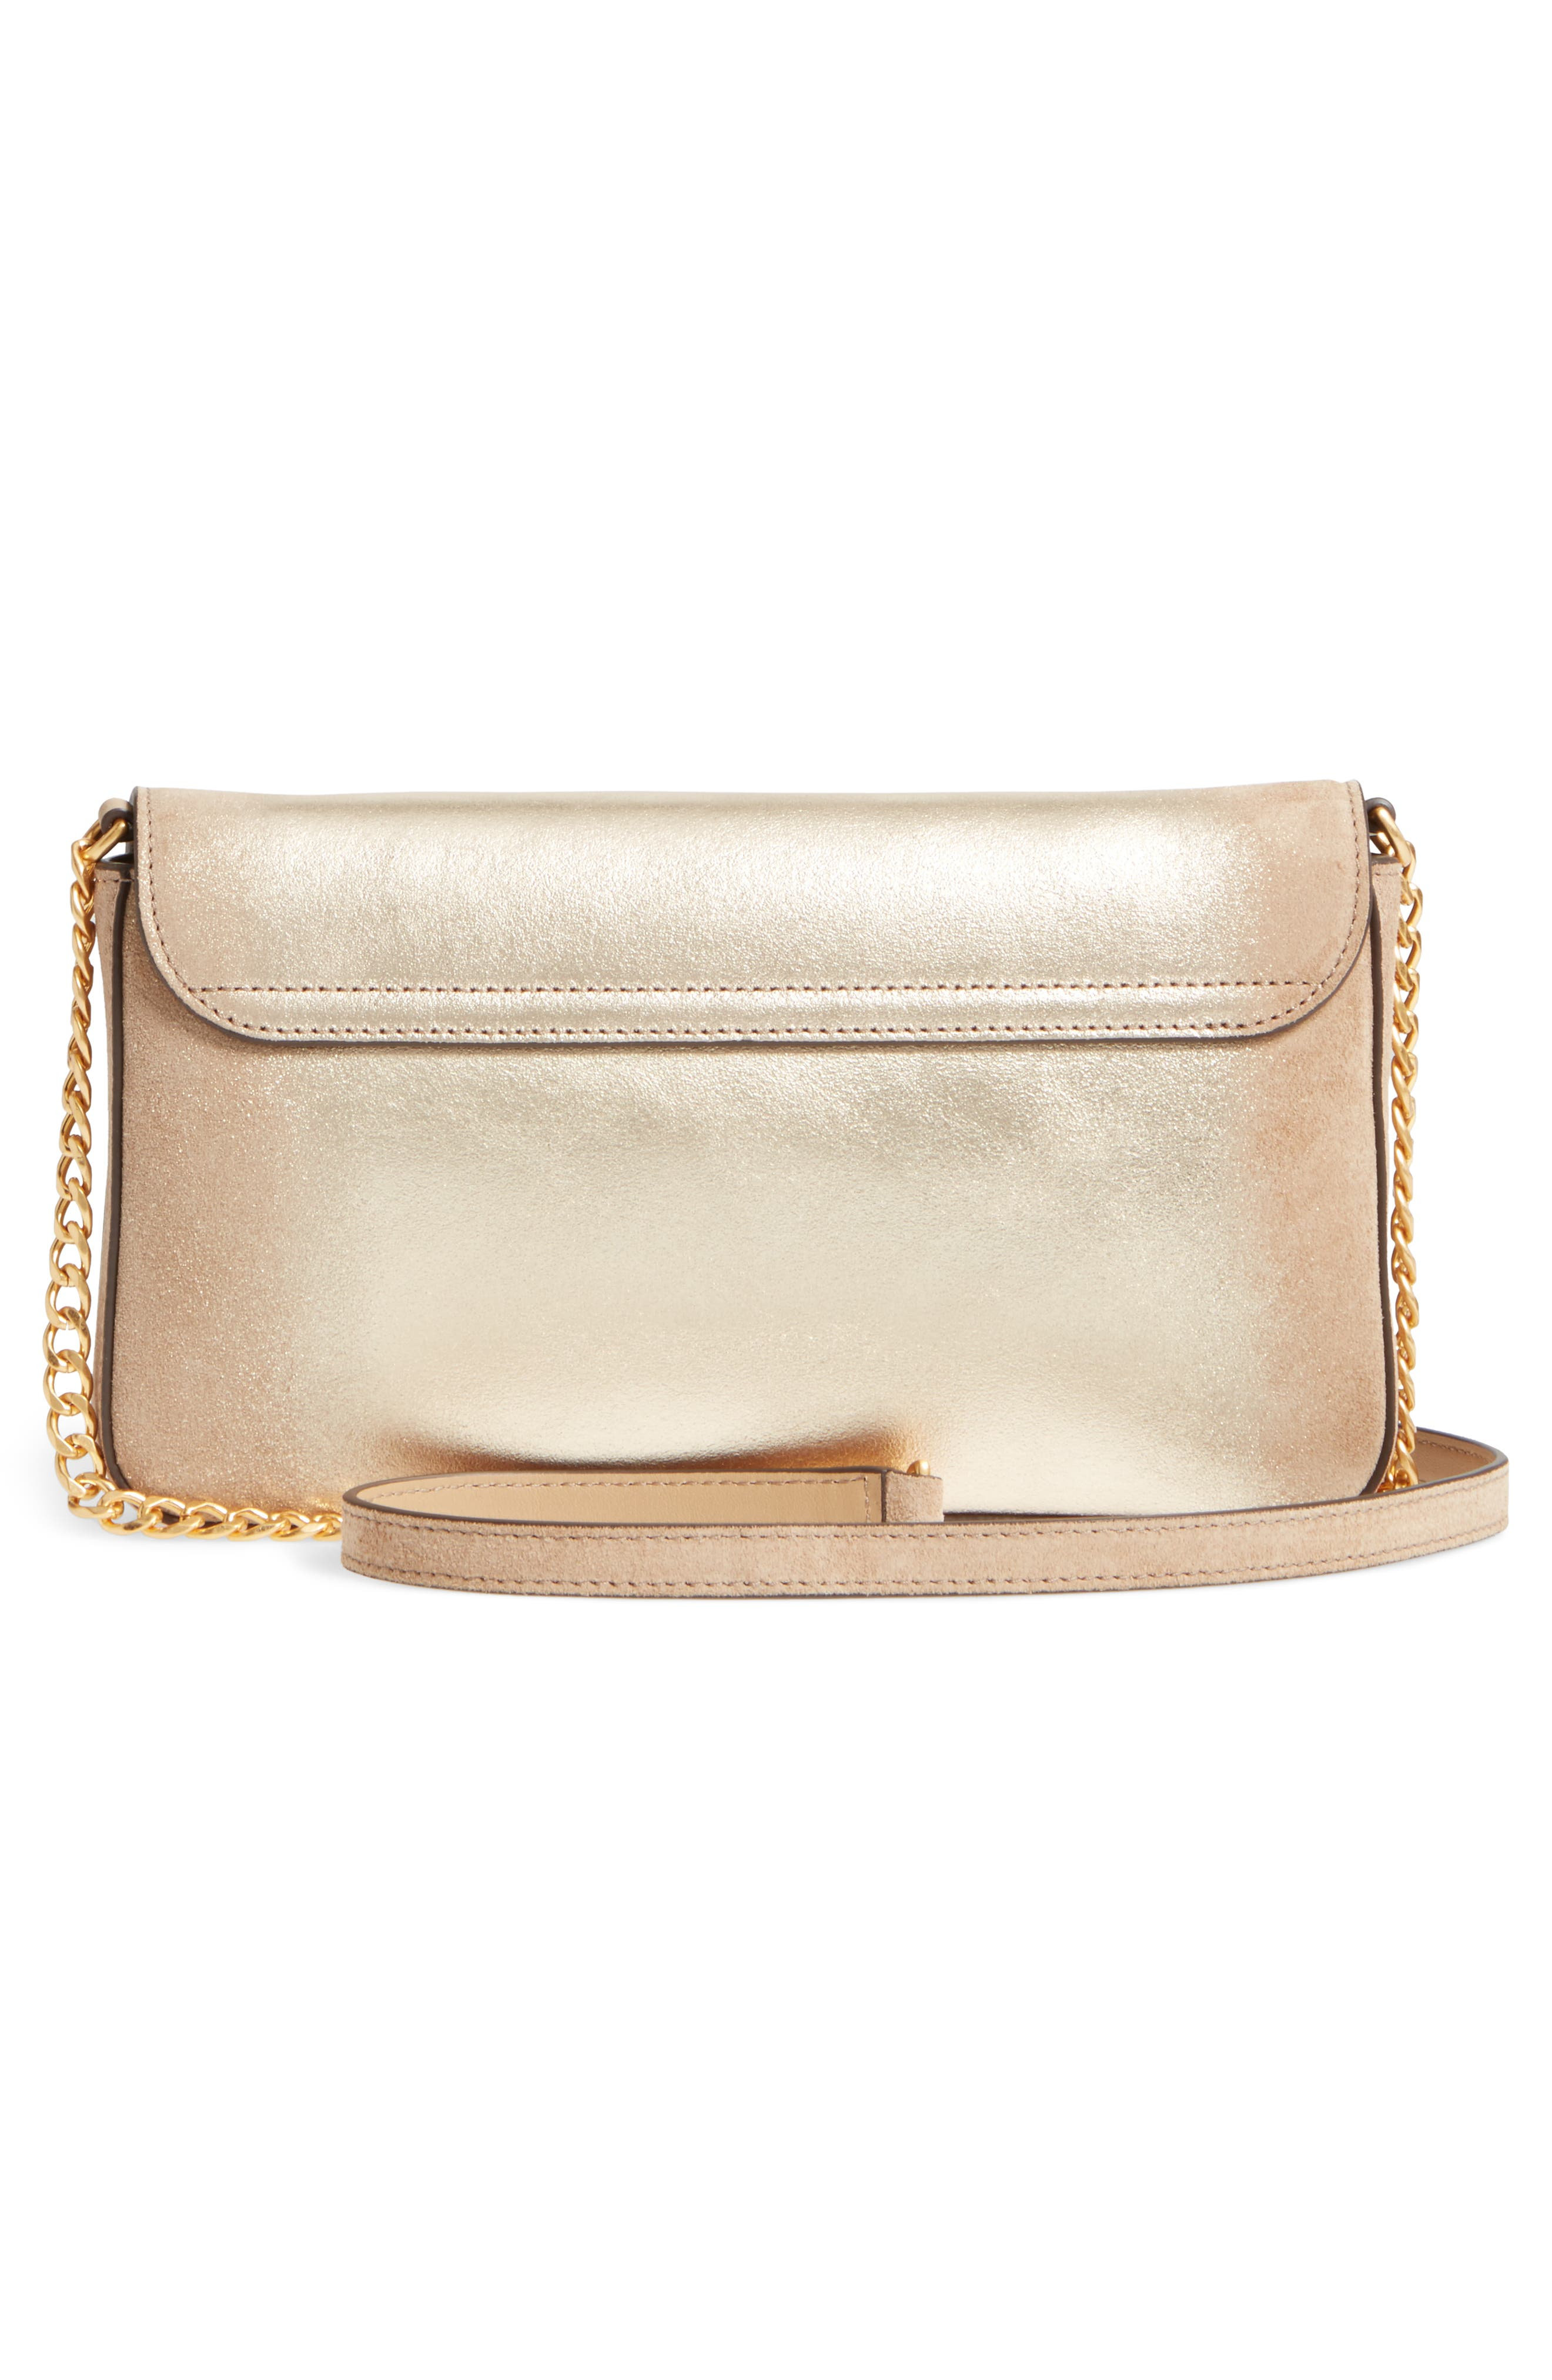 Chelsea Convertible Metallic Leather Clutch,                             Alternate thumbnail 3, color,                             710